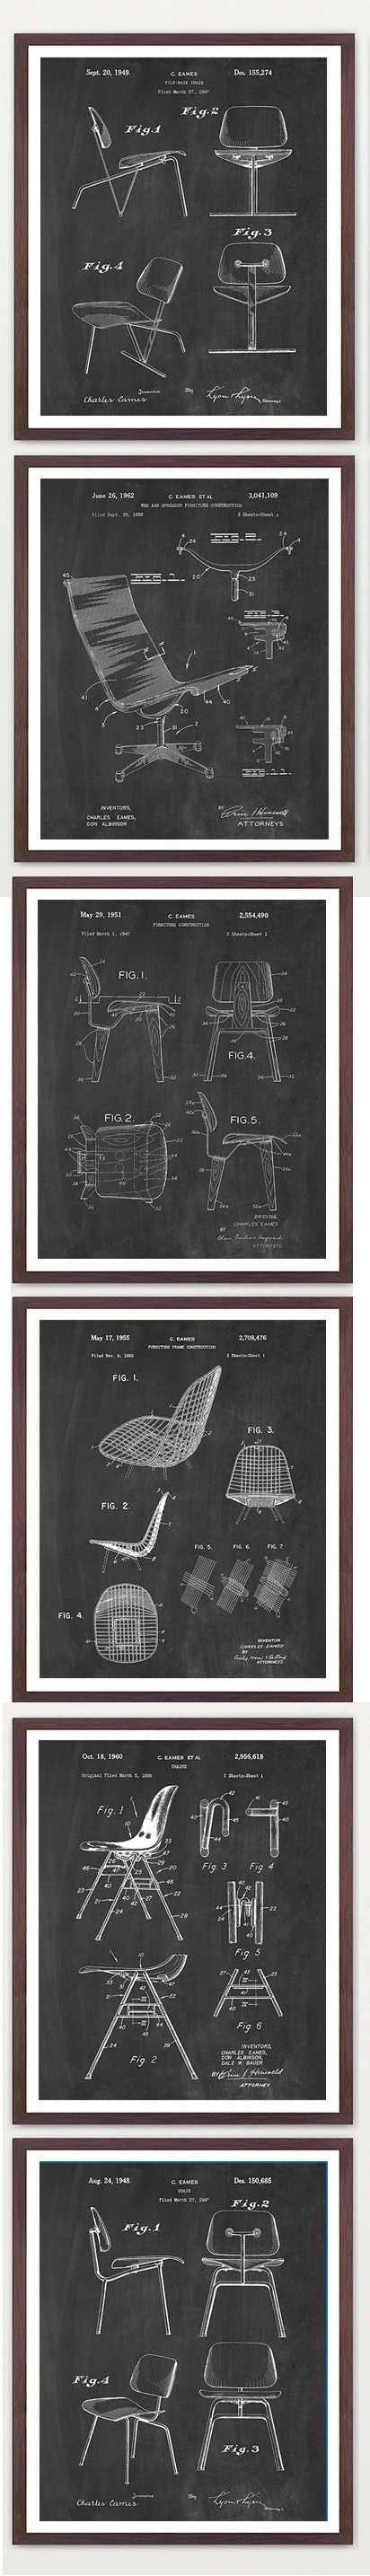 Eames chair patents, U.S. Patent Office